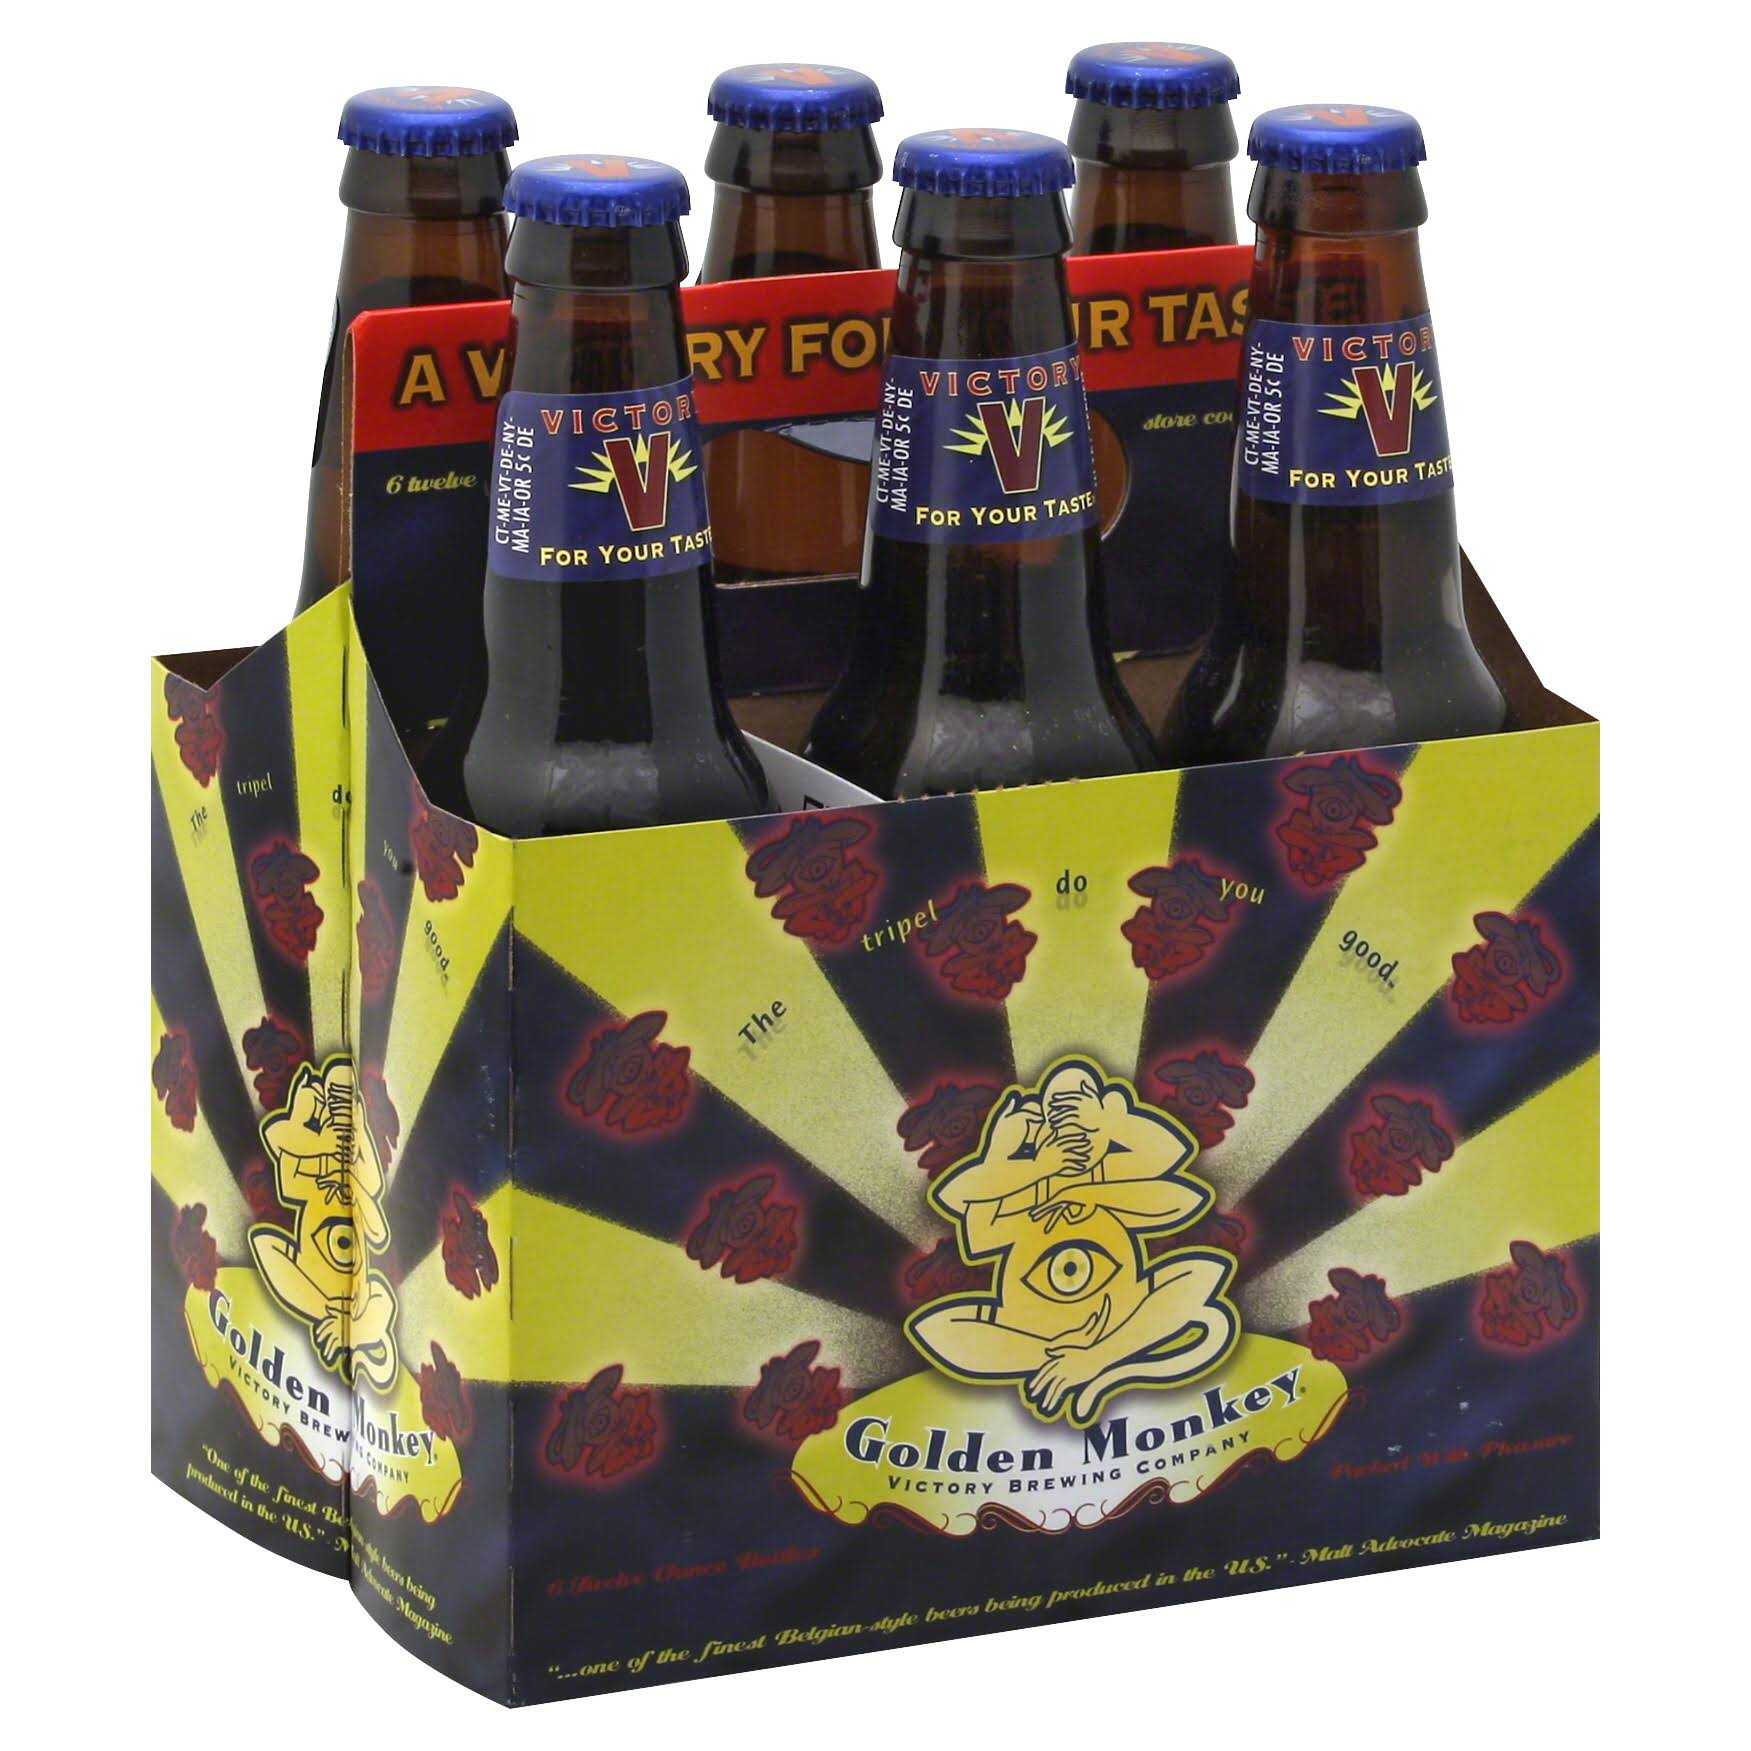 Victory Beer - 6 pack, 12 fl oz bottles